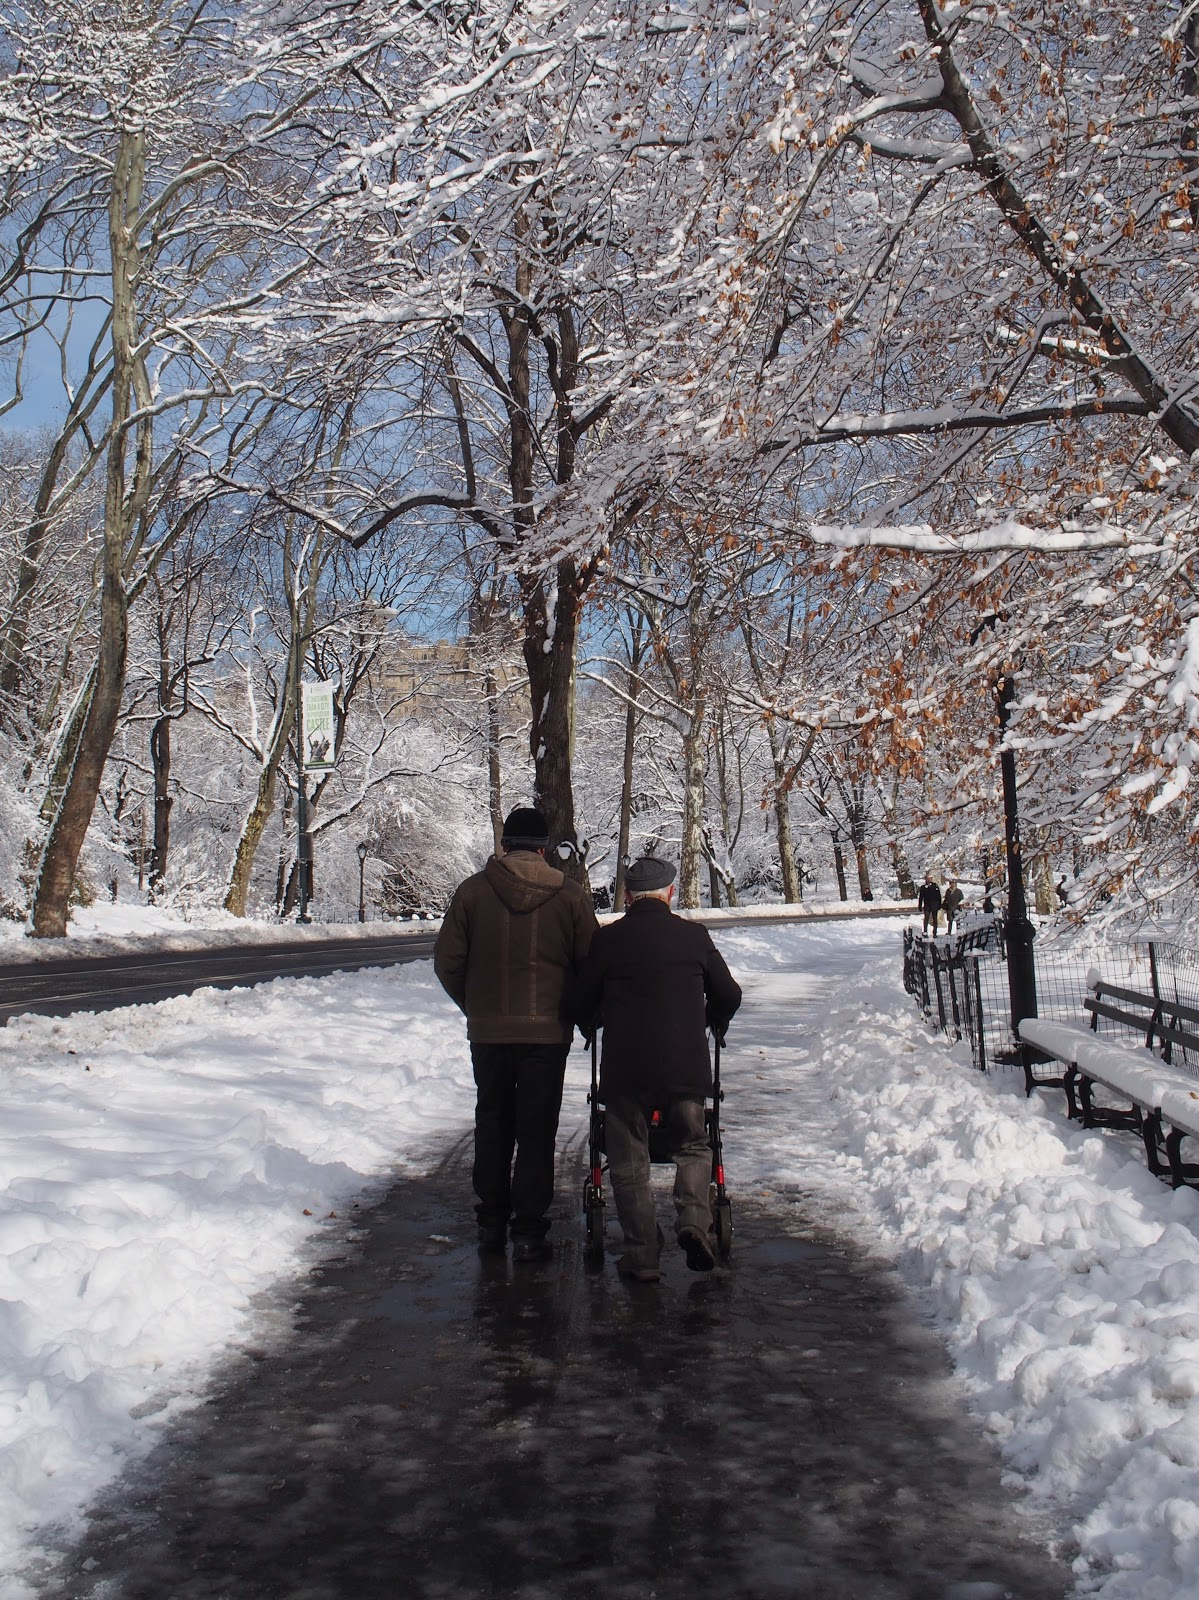 Out and About with a Little Help from a Friend, #centralpark #nyc #snow 2013